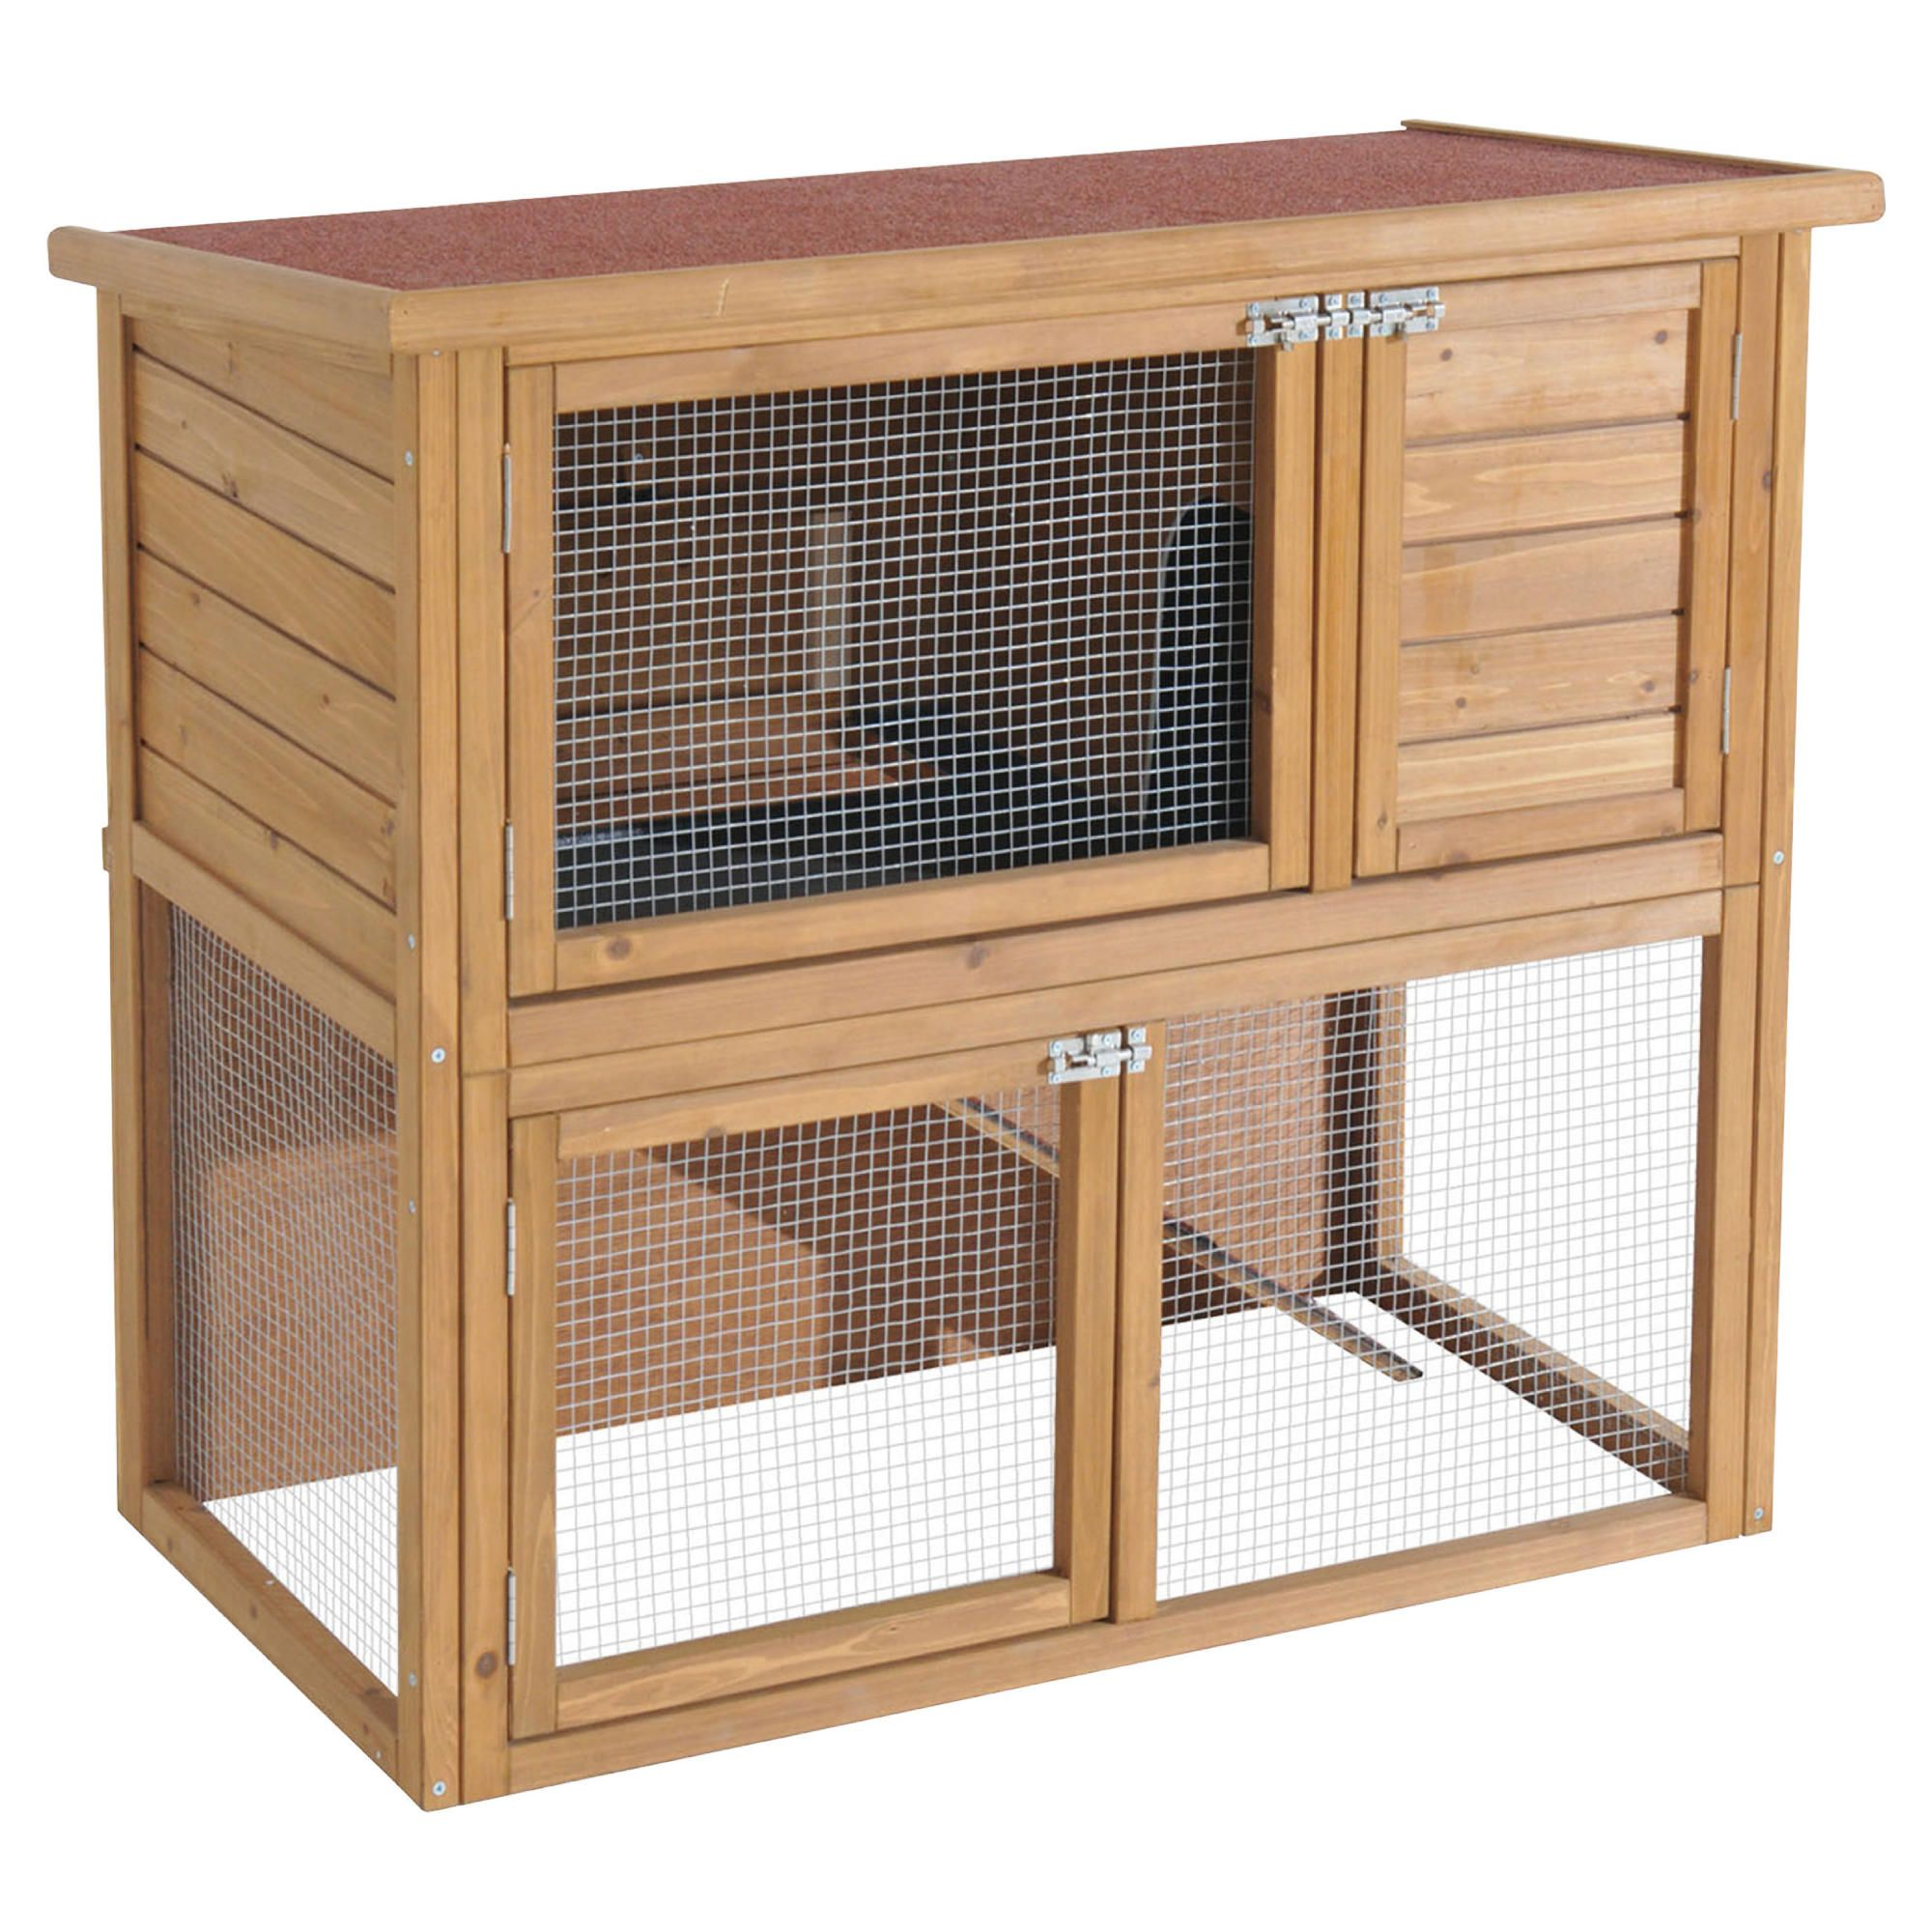 Rabbitshack ground level hutch with under-run with cover